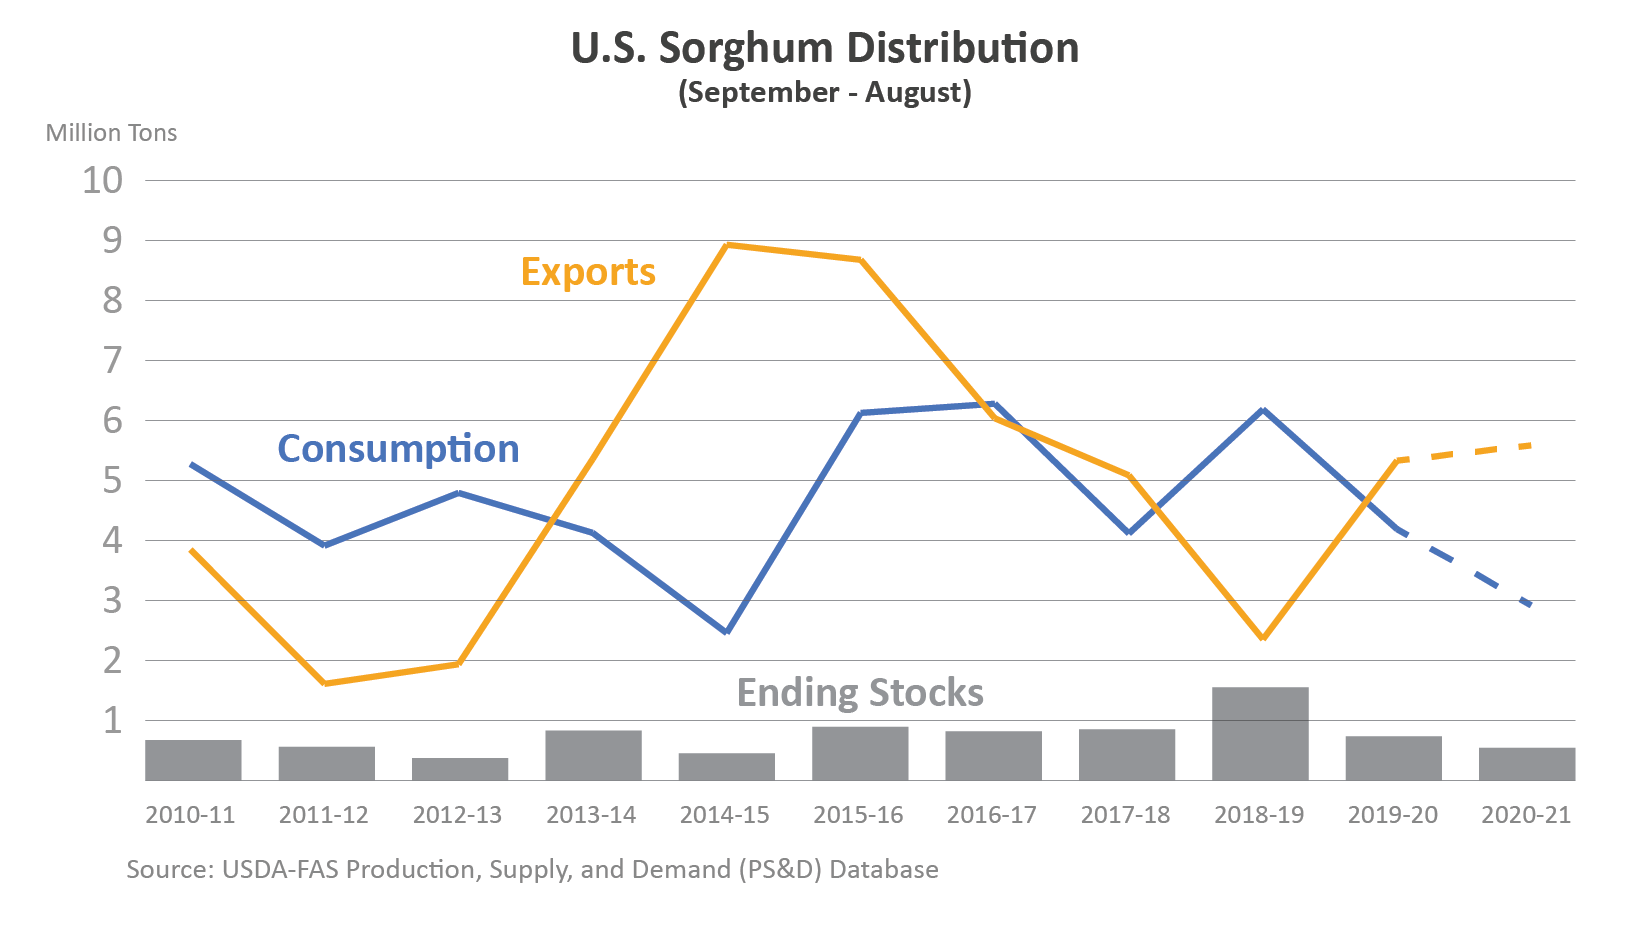 Combination line graph and column chart illustrating U.S. sorghum exports, consumption, and ending stocks from MY2010/11 to MY2020/21